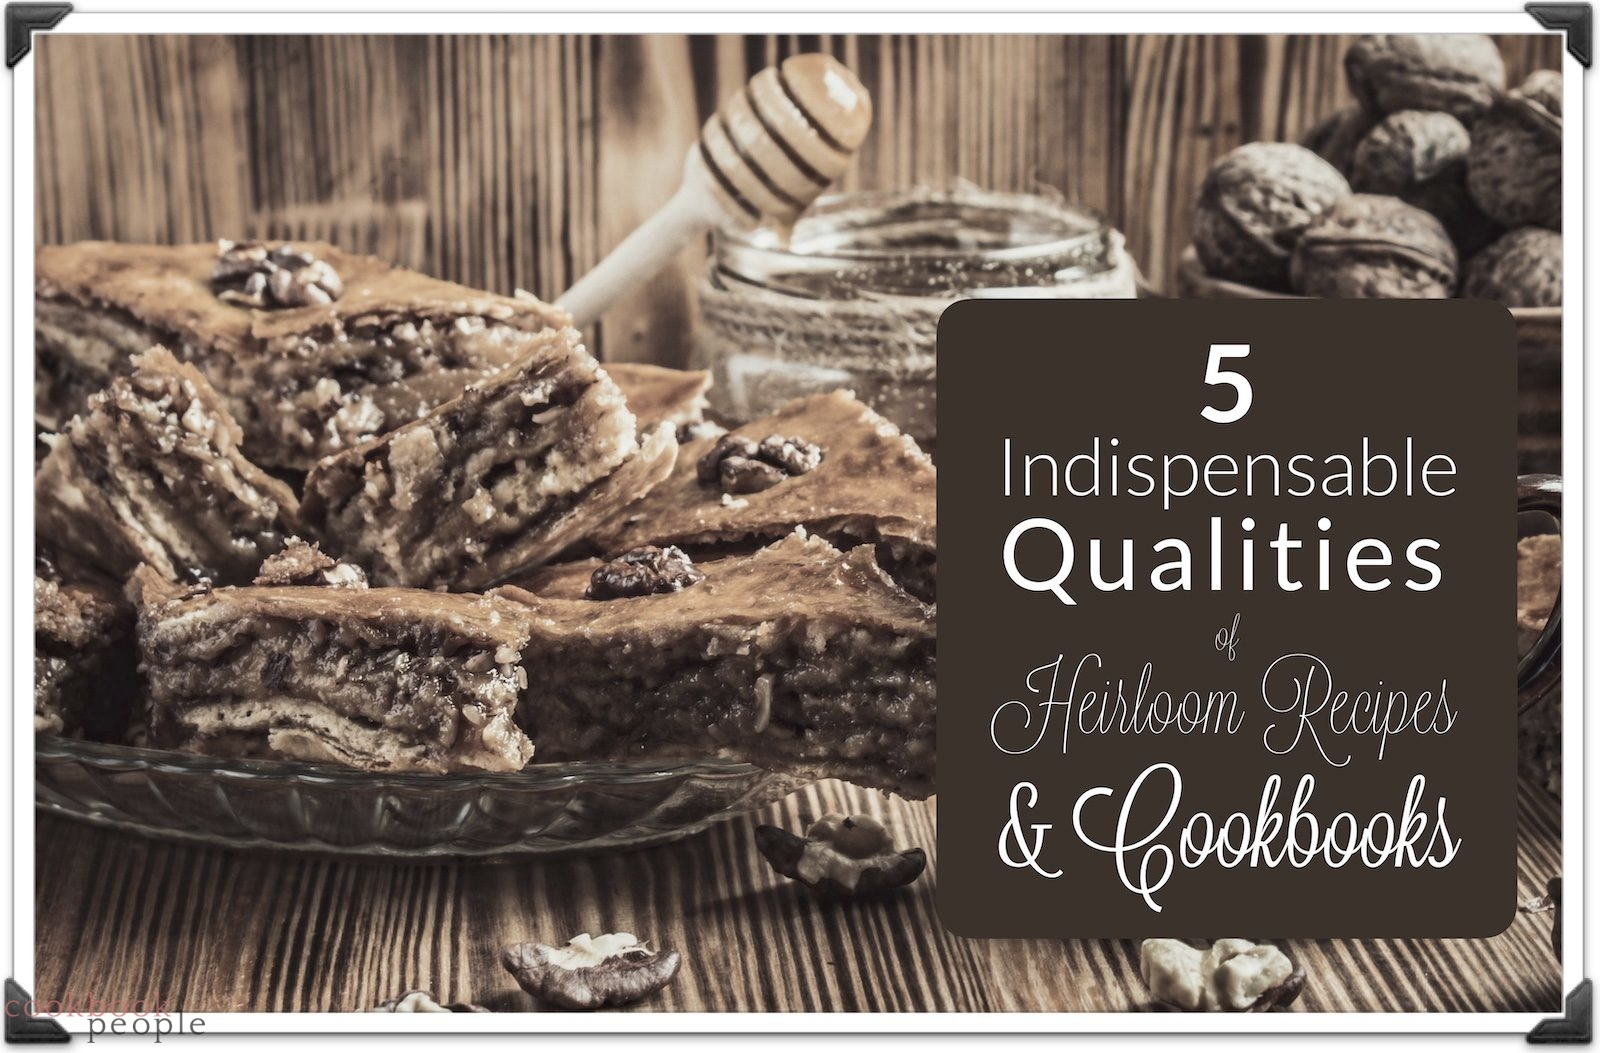 vintage style photo of baklava and walnuts with title: 5 Indispensable Qualities of Heirloom Recipes & Cookbooks